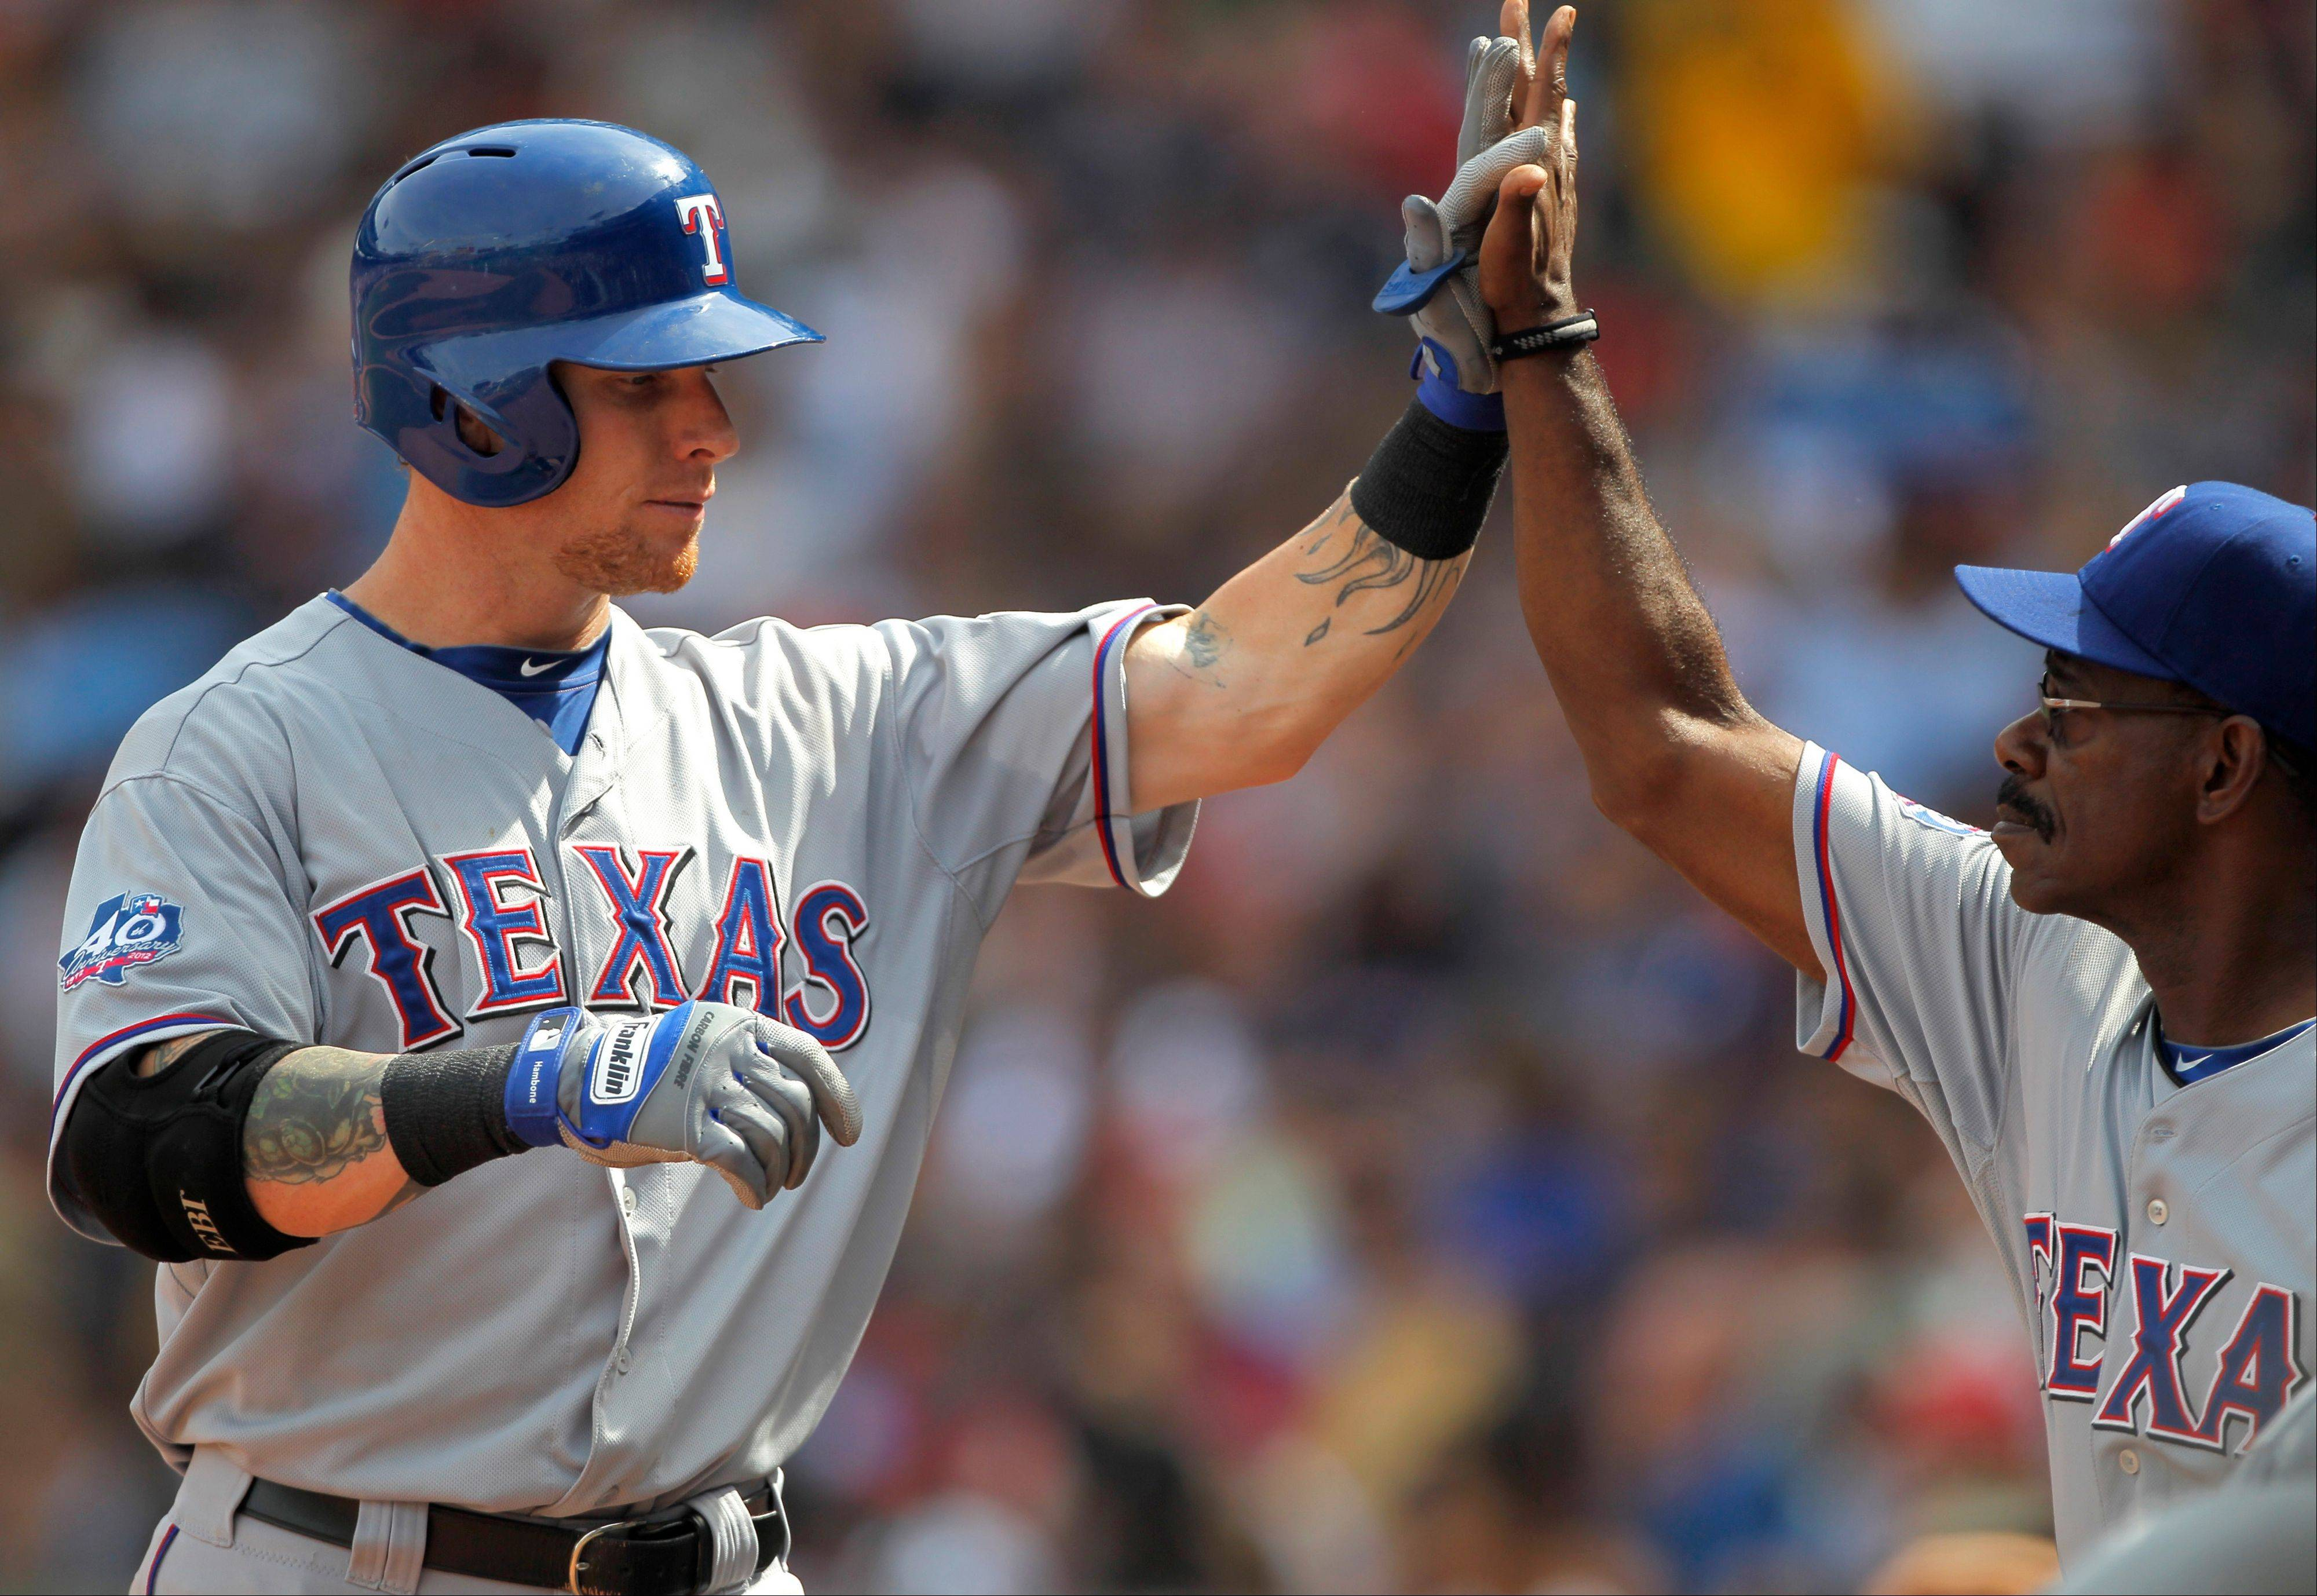 Texas Rangers outfielder Josh Hamilton, left, is welcomed to the dugout by' manager Ron Washington after hitting a two-run home run off a Boston Red Sox pitcher Josh Beckett Wednesday during the fifth inning.